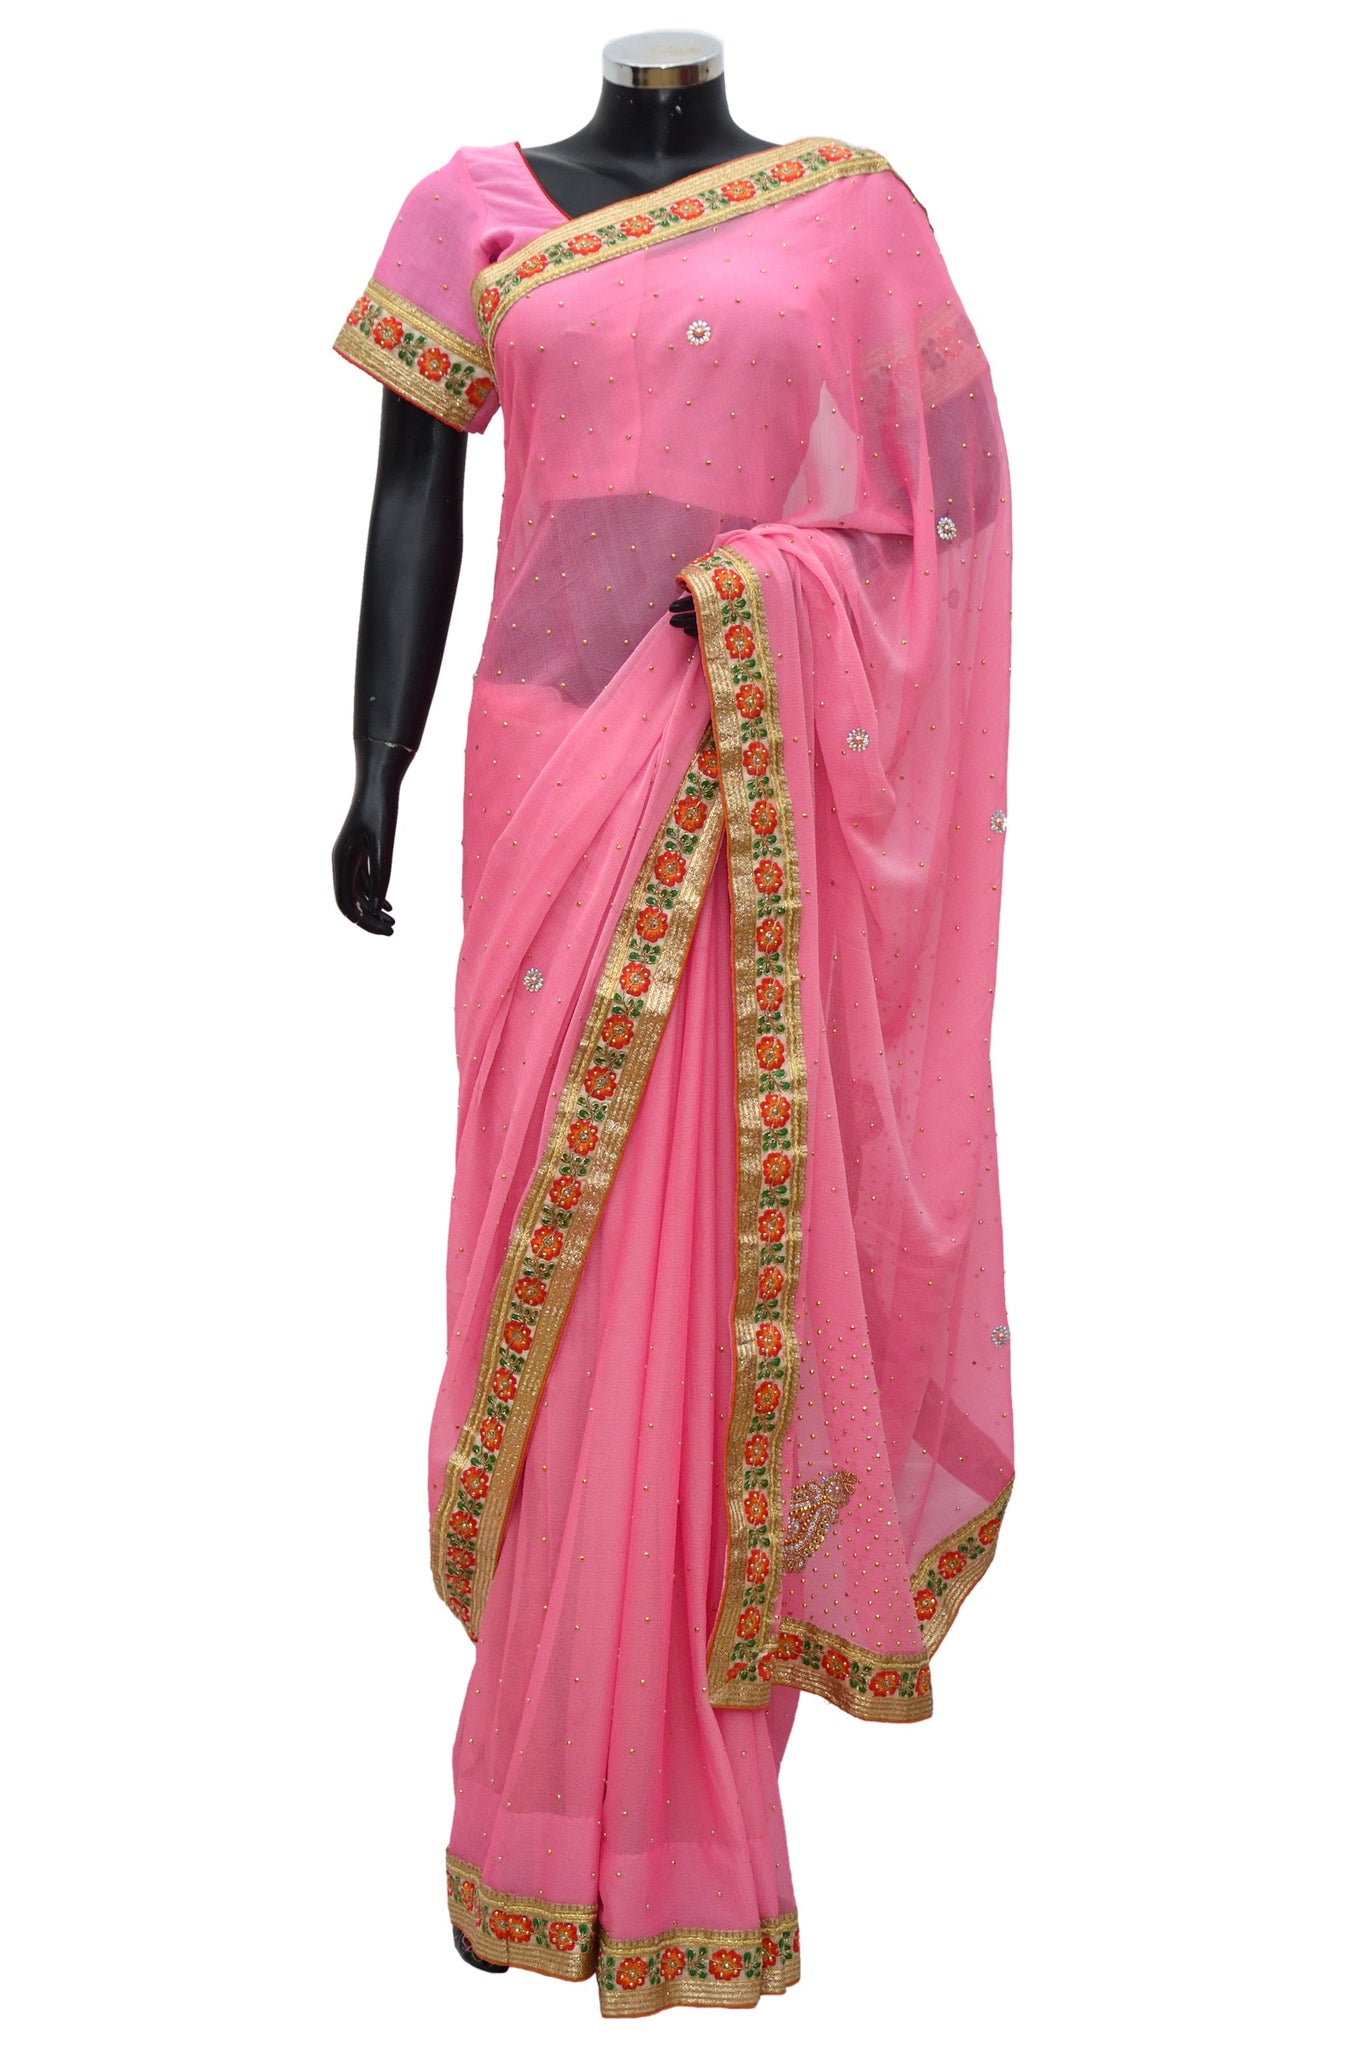 Fancy saree Fdn1012-161